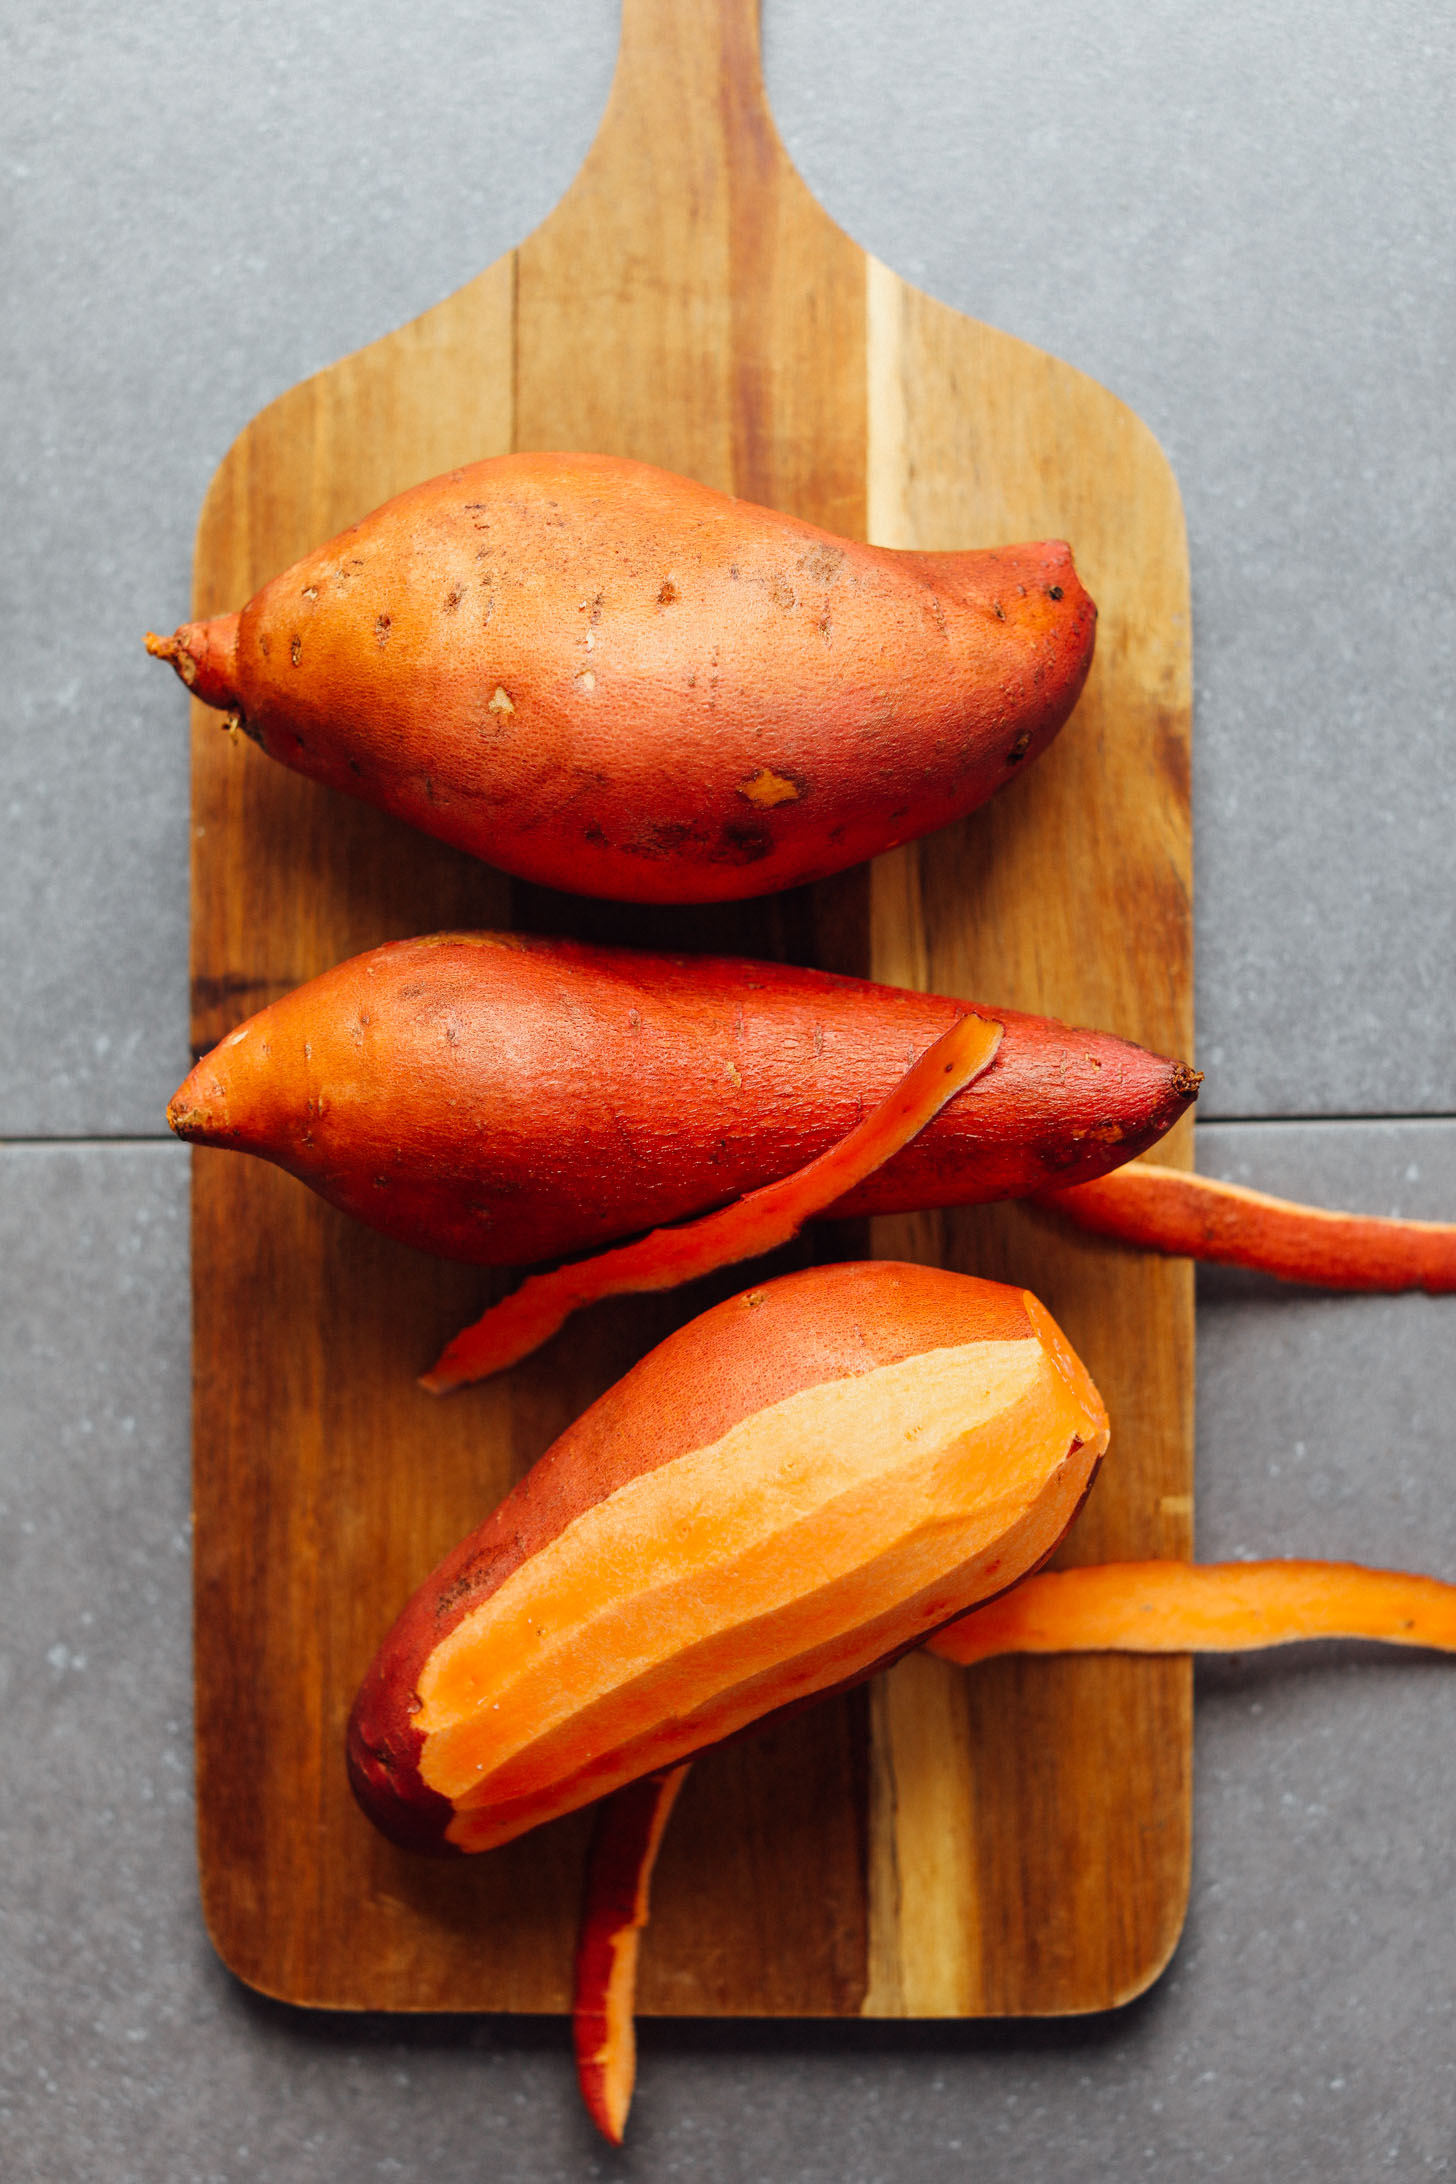 Wood cutting board with sweet potatoes, one of which is partially peeled